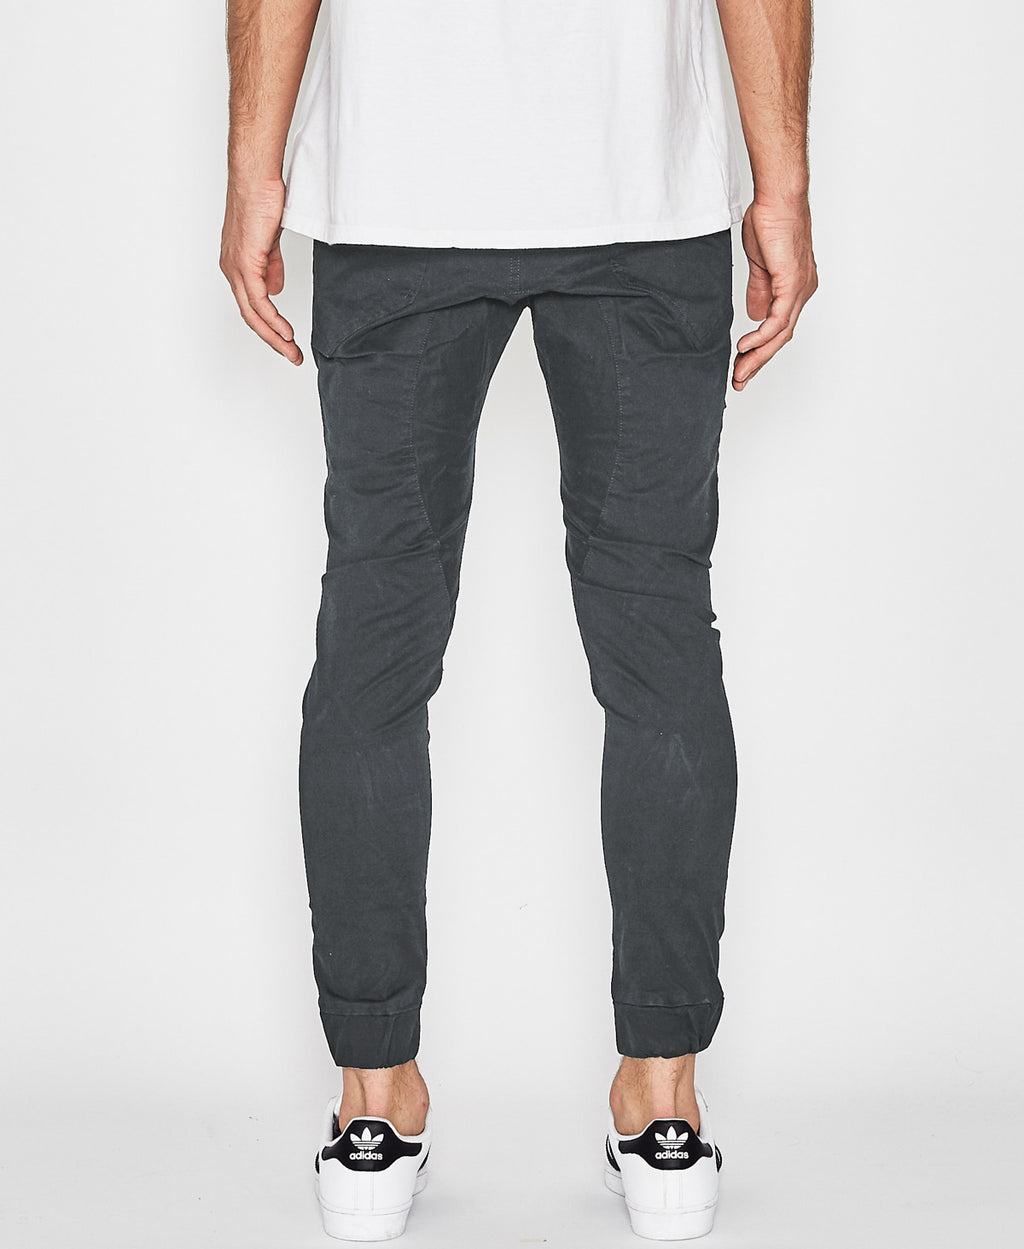 Nena And Pasadena - Flight Pants - Charcoal